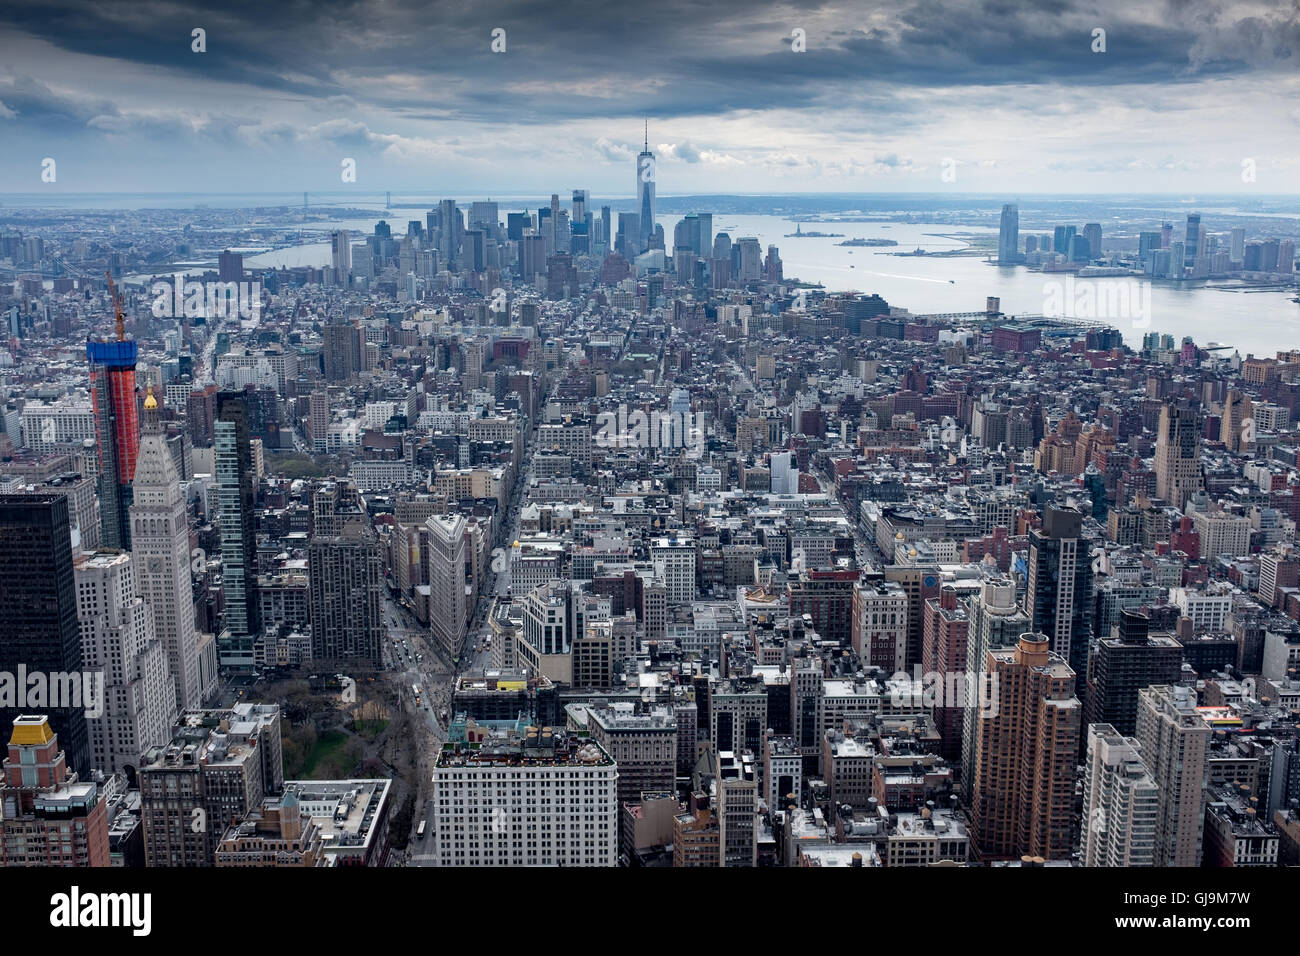 New York City USA View from Empire State Building looking southwards along Manhatten Island. Stock Photo